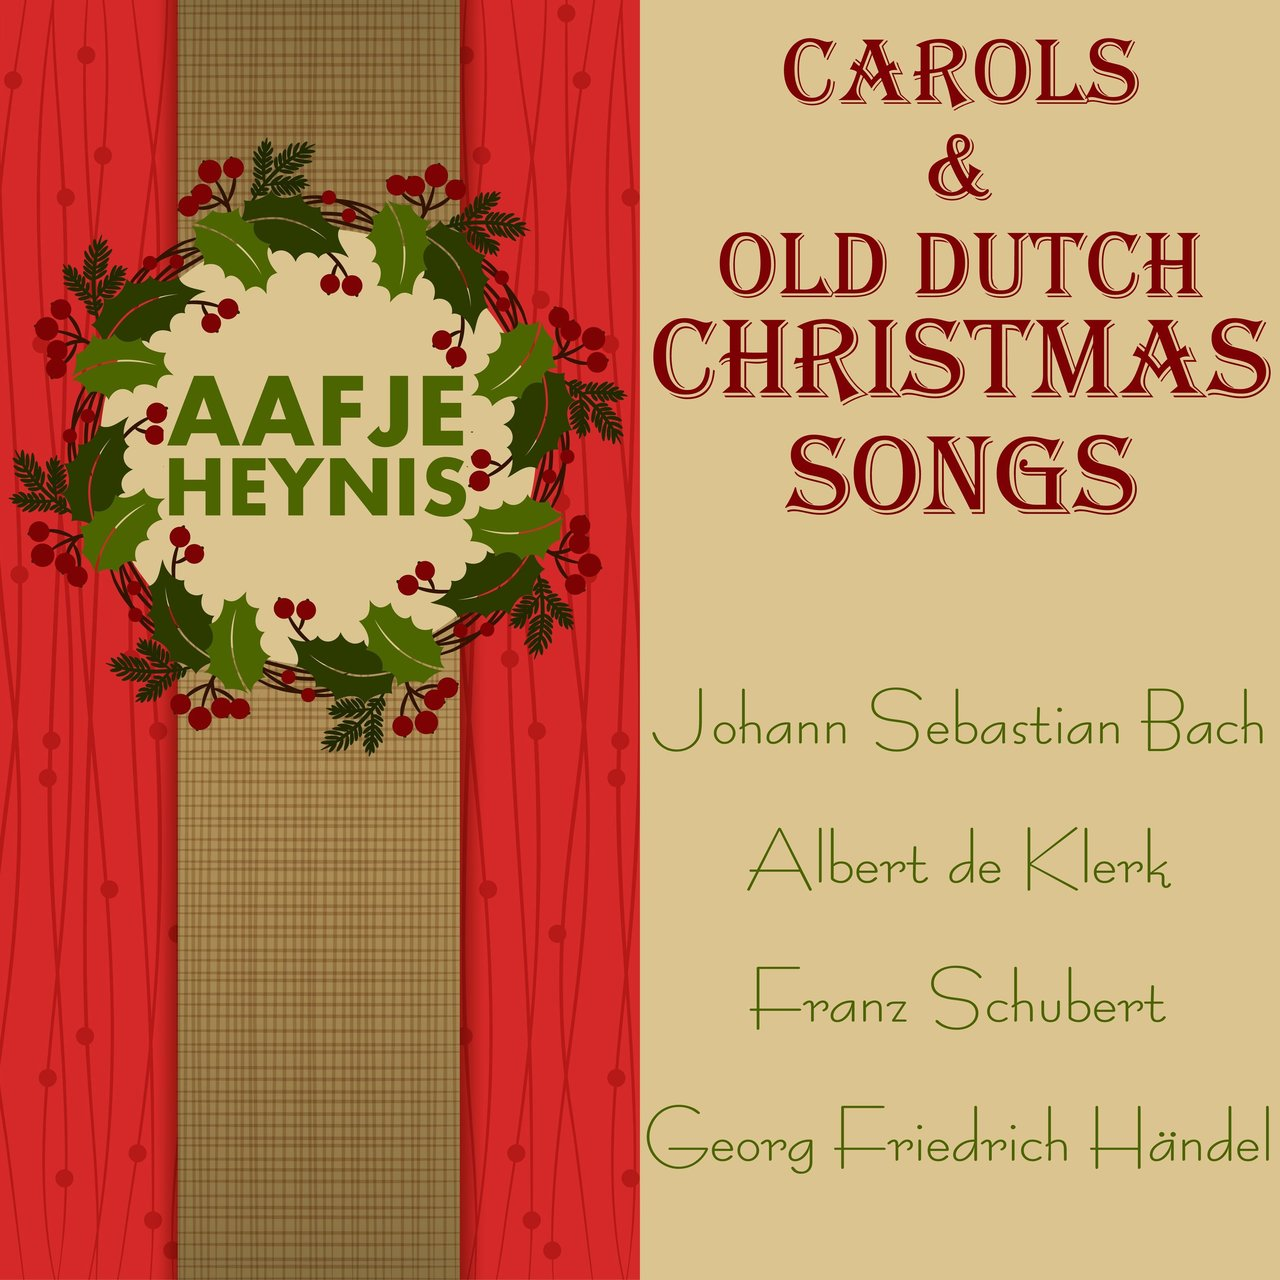 TIDAL: Listen to Carols & Old Dutch Christmas Songs on TIDAL